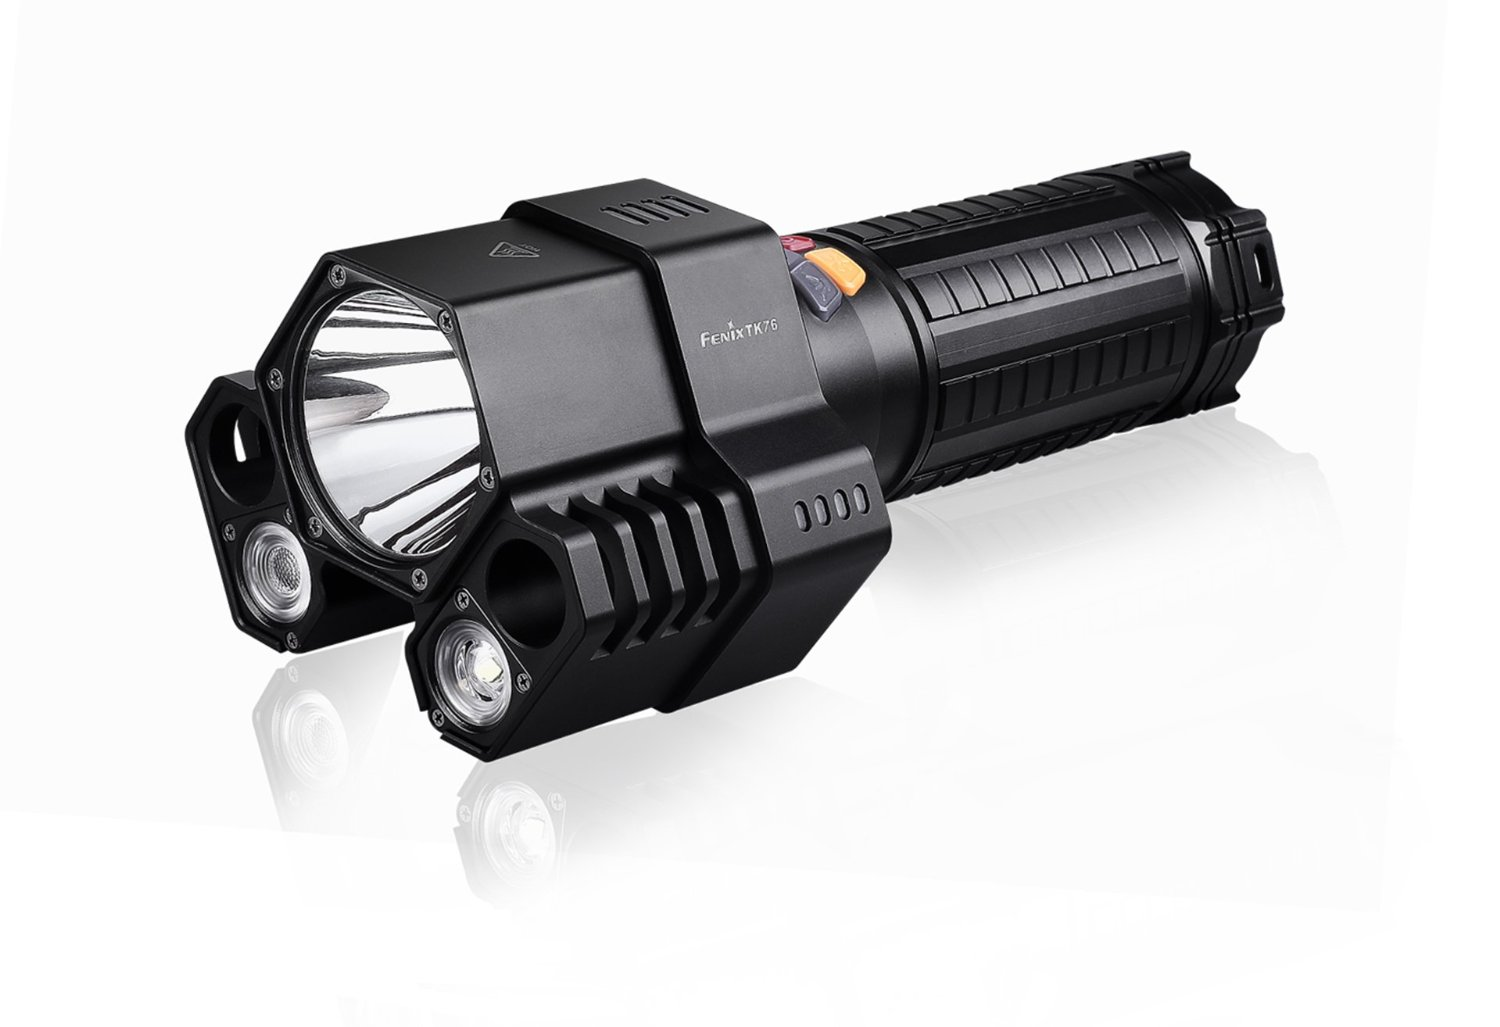 Fenix TK76 High Lumen LED Flashlight